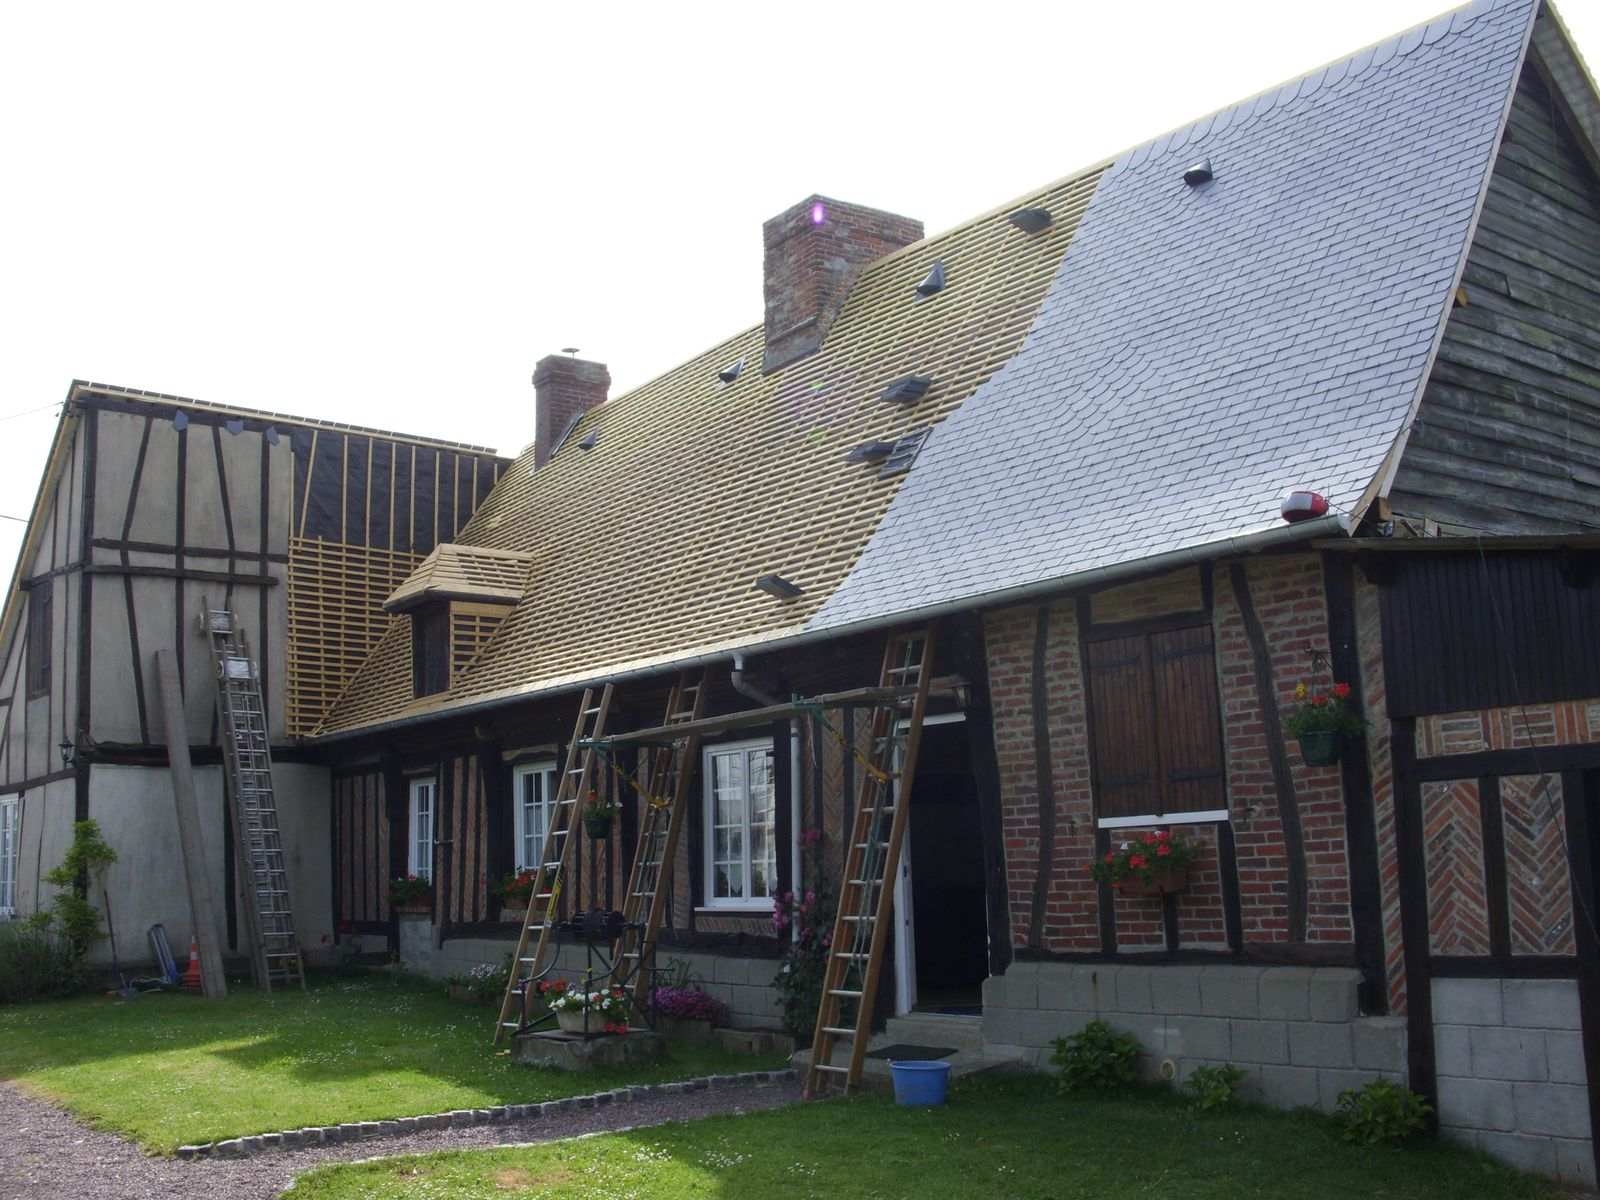 Couverture en ardoise renovation maison normande - Restauration maison normande ...